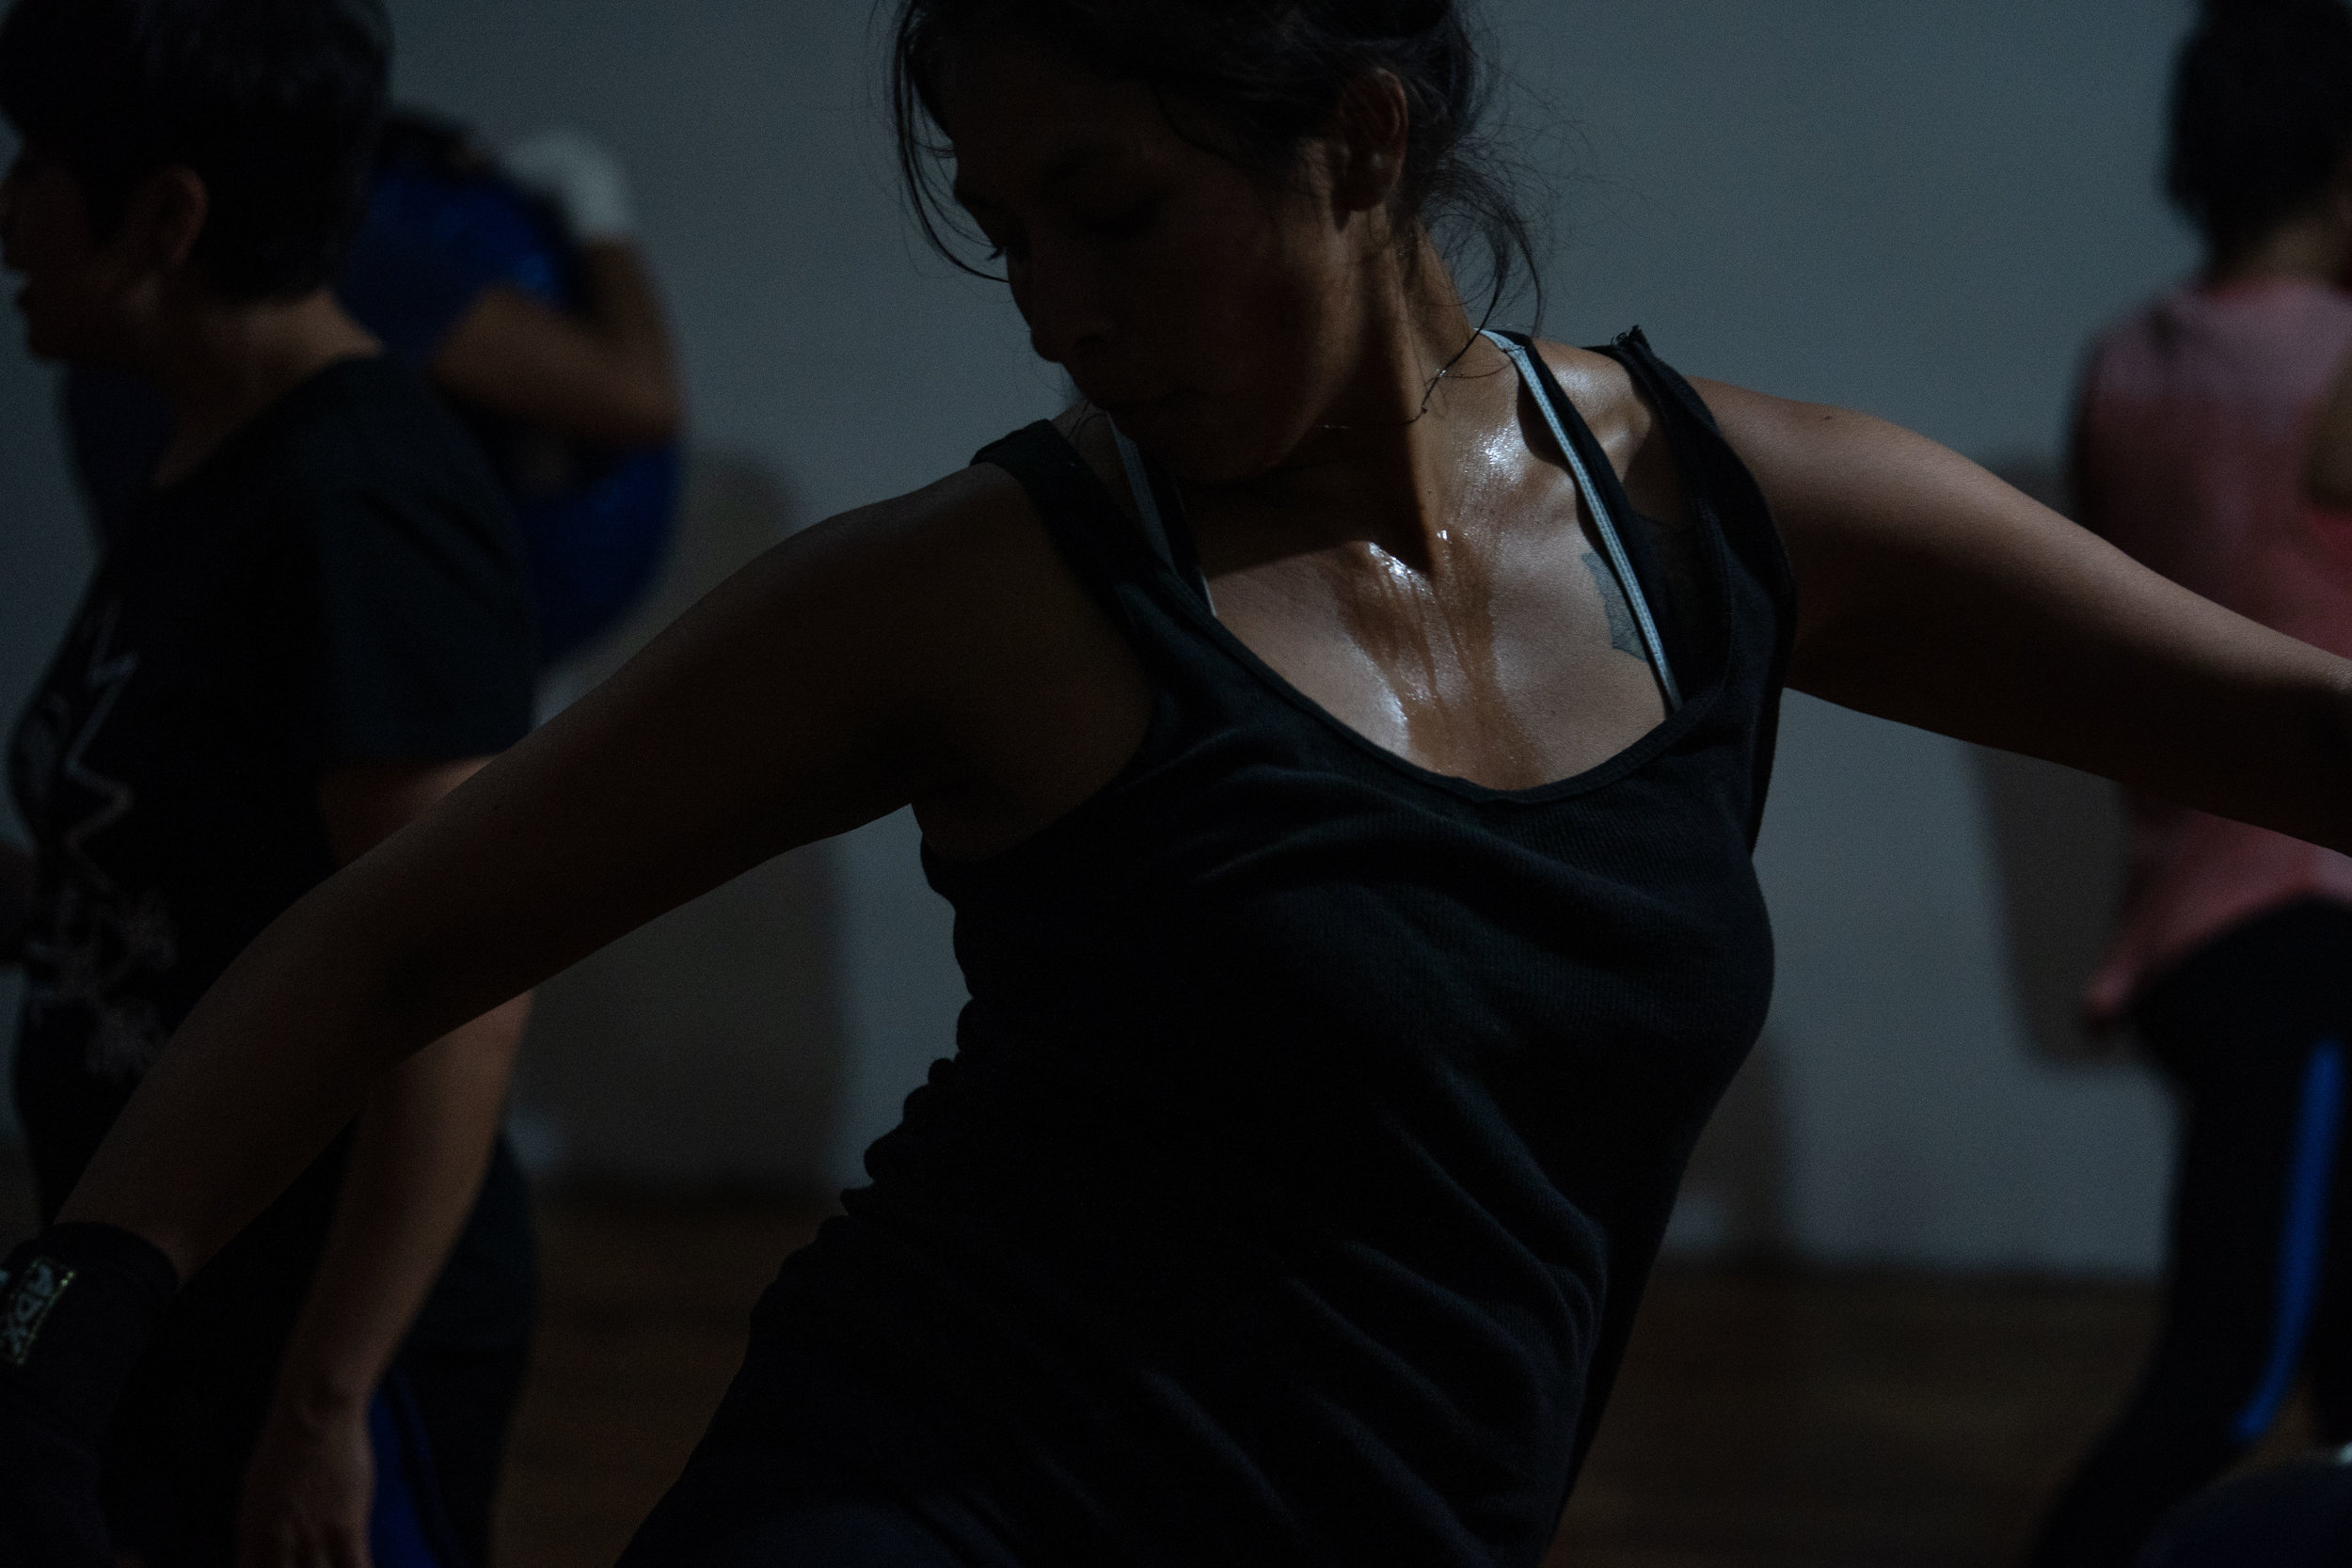 A woman takes part in La Ruda self-defense class in Mexico City in March, 2019.